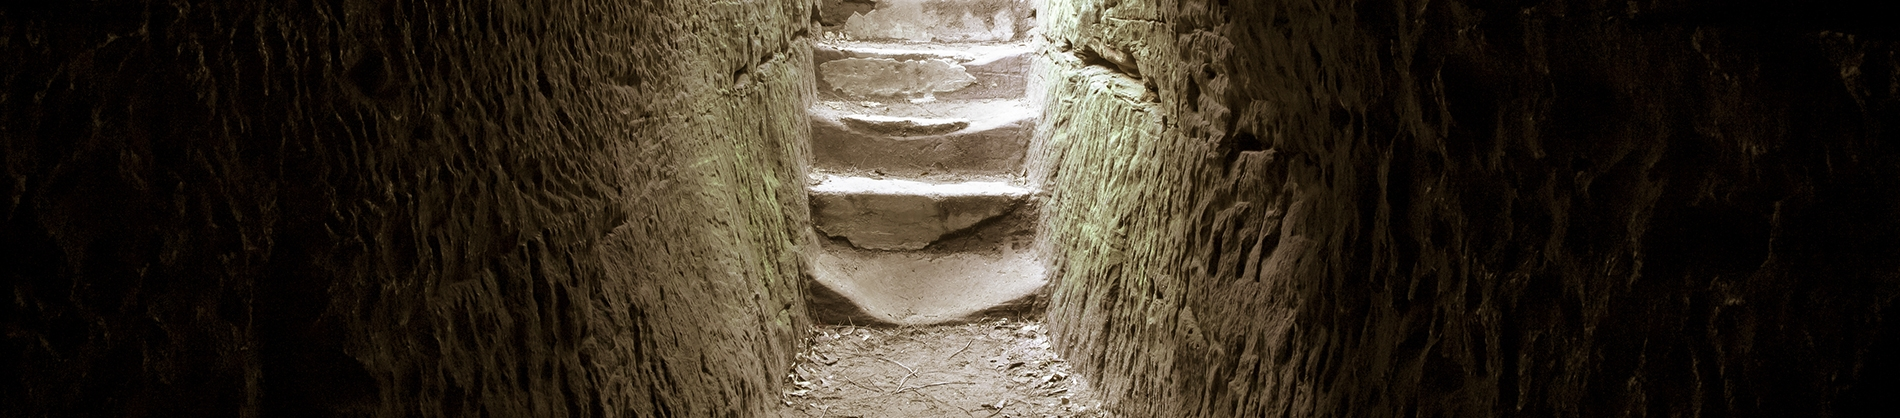 Steps up from inside a tomb into the light